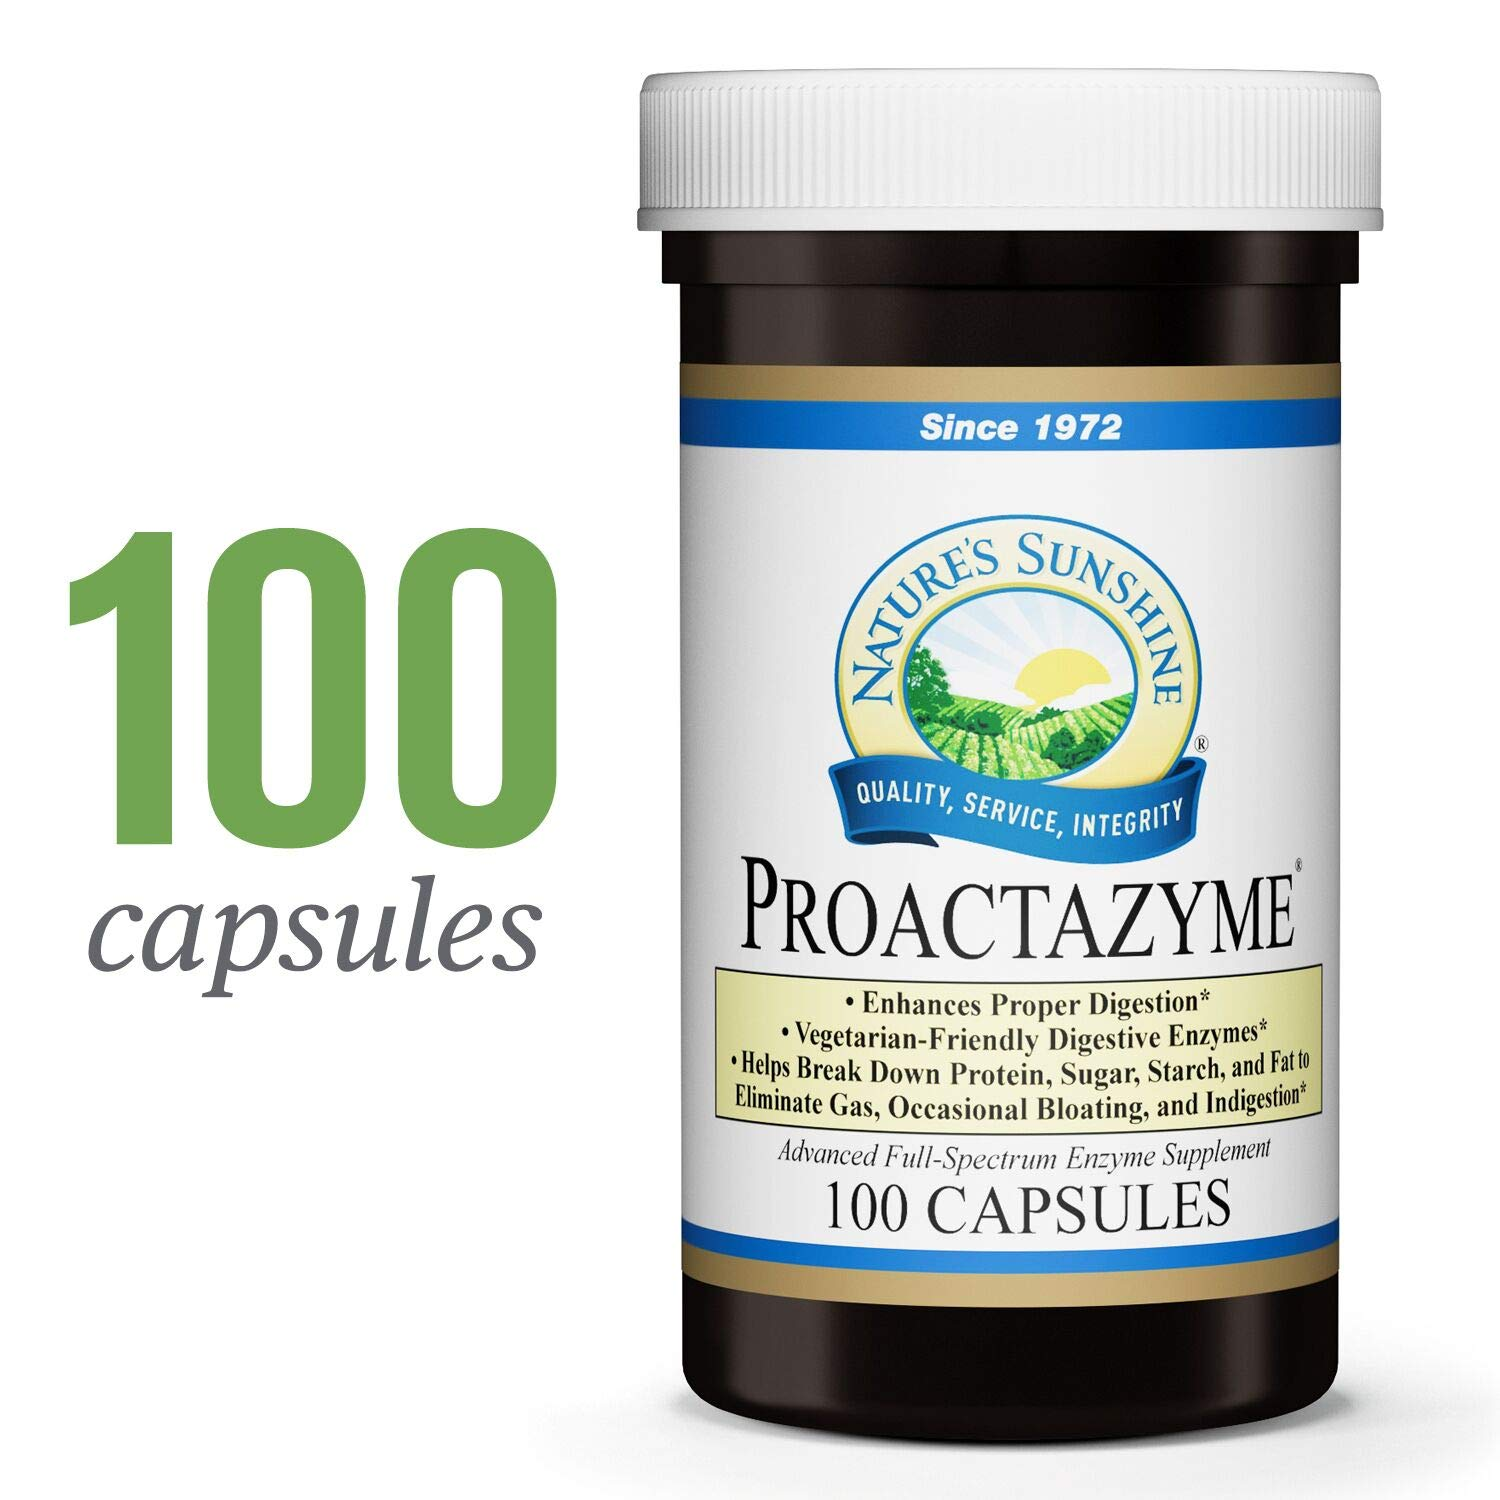 Nature s Sunshine Proactazyme, 100 Capsules Full Spectrum Digestive Enzymes Supplement to Aid The Digestion of Fat, Protein, and Carbs